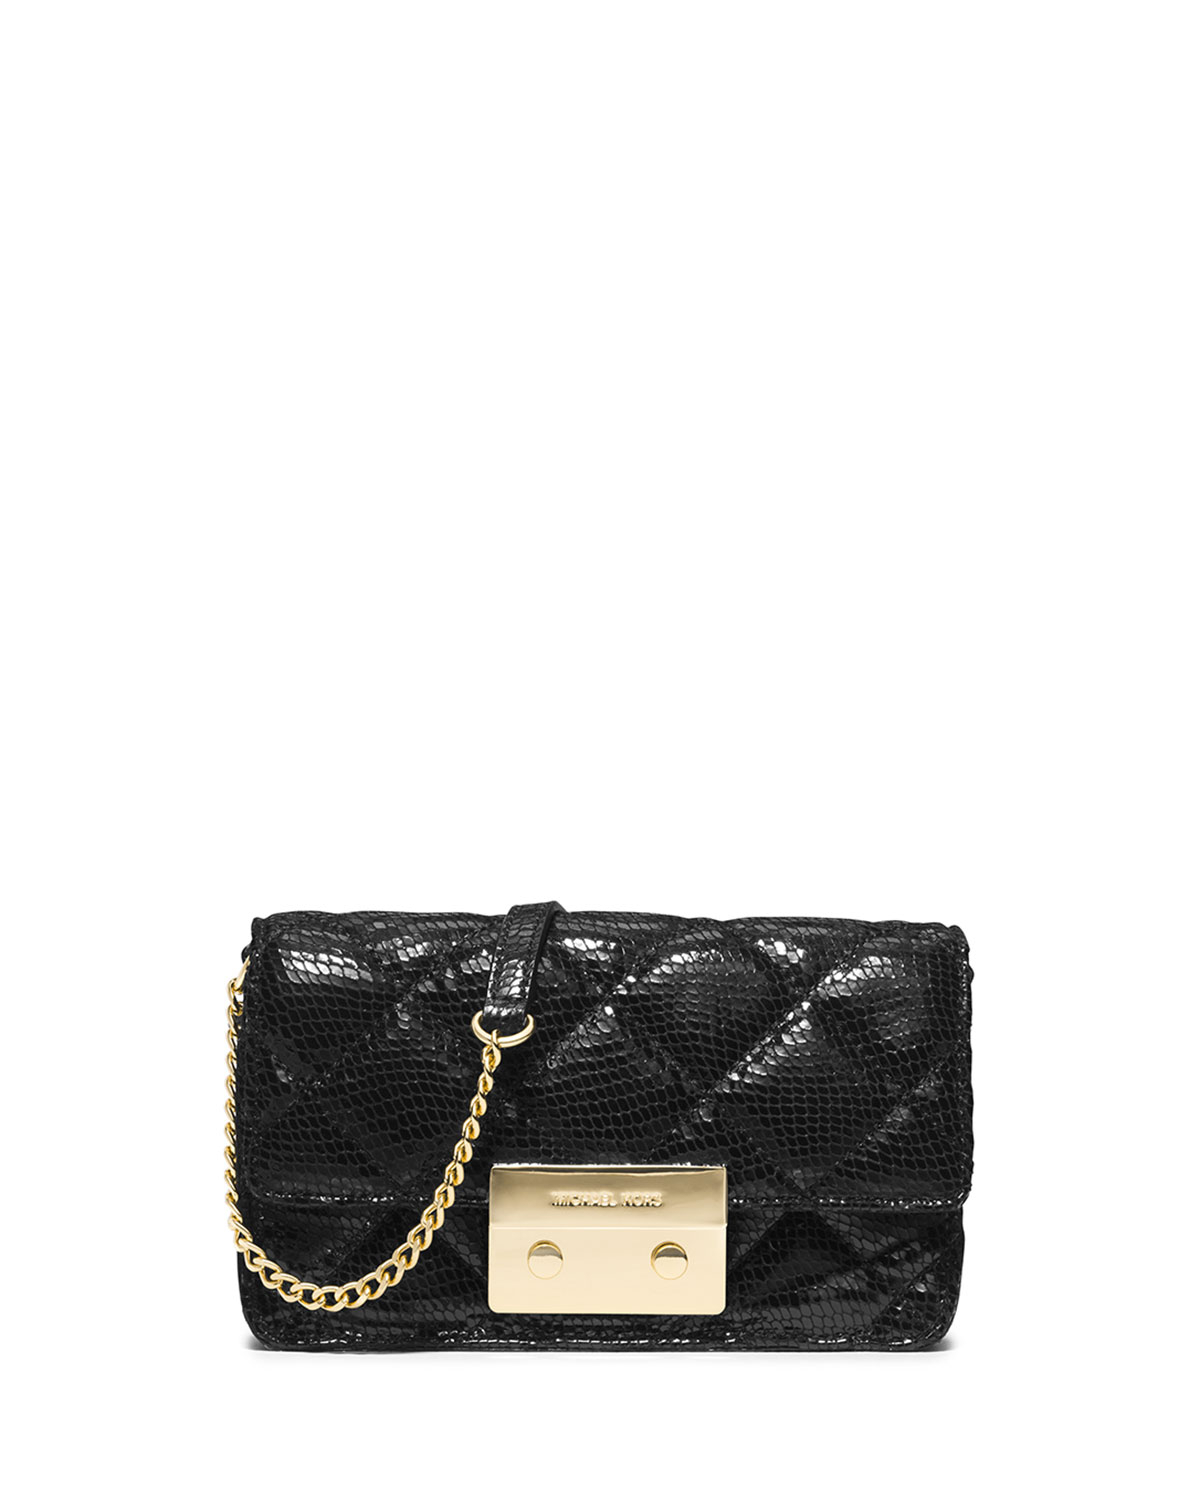 0b9f62e24a62 Gallery. Previously sold at: Neiman Marcus · Women's Michael Kors Quilted  Bag Women's Michael By Michael Kors Sloan